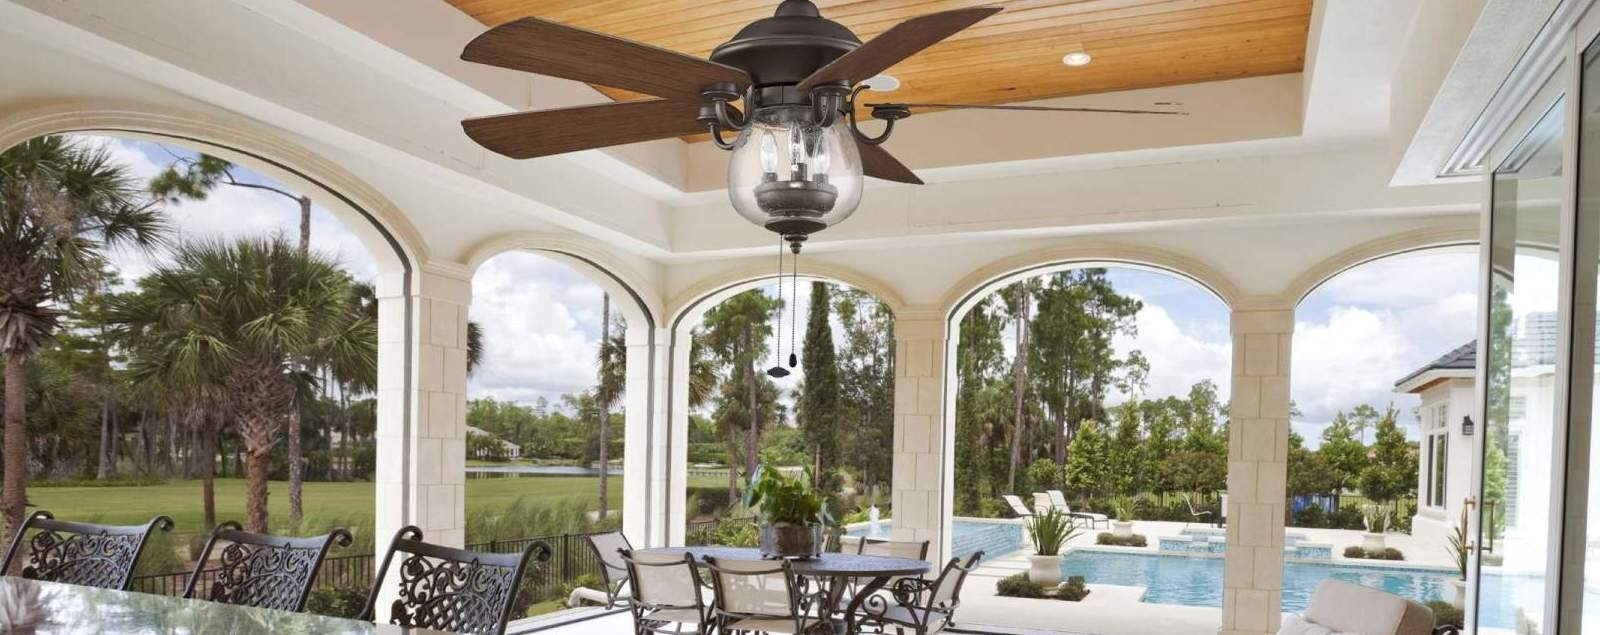 High Volume Outdoor Ceiling Fans Regarding Most Popular Outdoor Ceiling Fans – Shop Wet, Dry, And Damp Rated Outdoor Fans (Gallery 15 of 20)